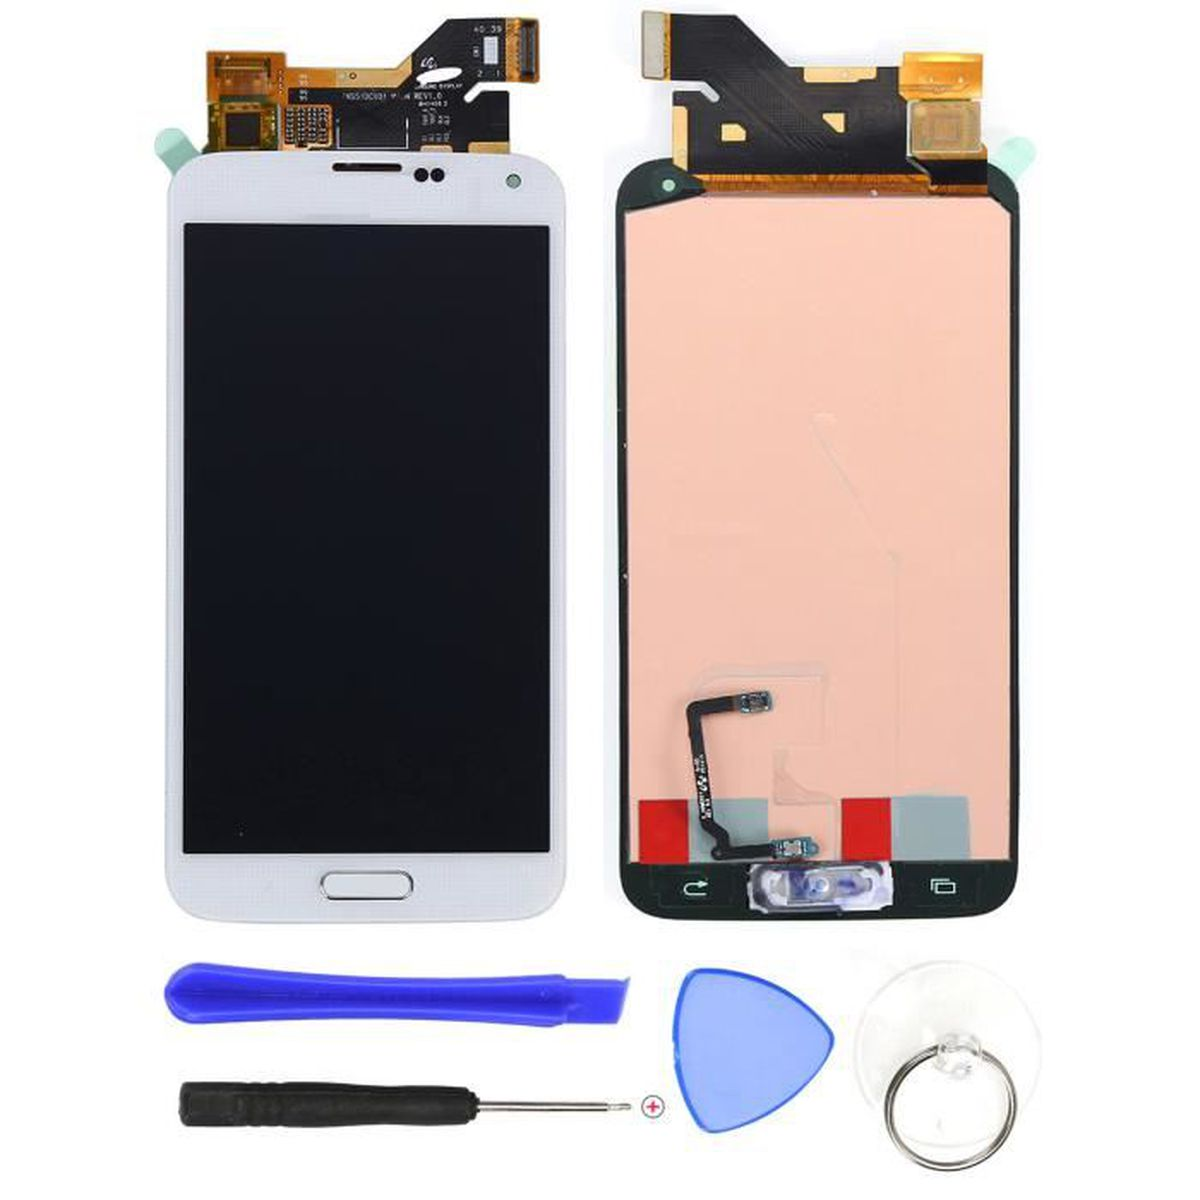 cran complet lcd pour samsung g900 i9600 galaxy s5 blanc tactile outils reparer achat pi ce. Black Bedroom Furniture Sets. Home Design Ideas